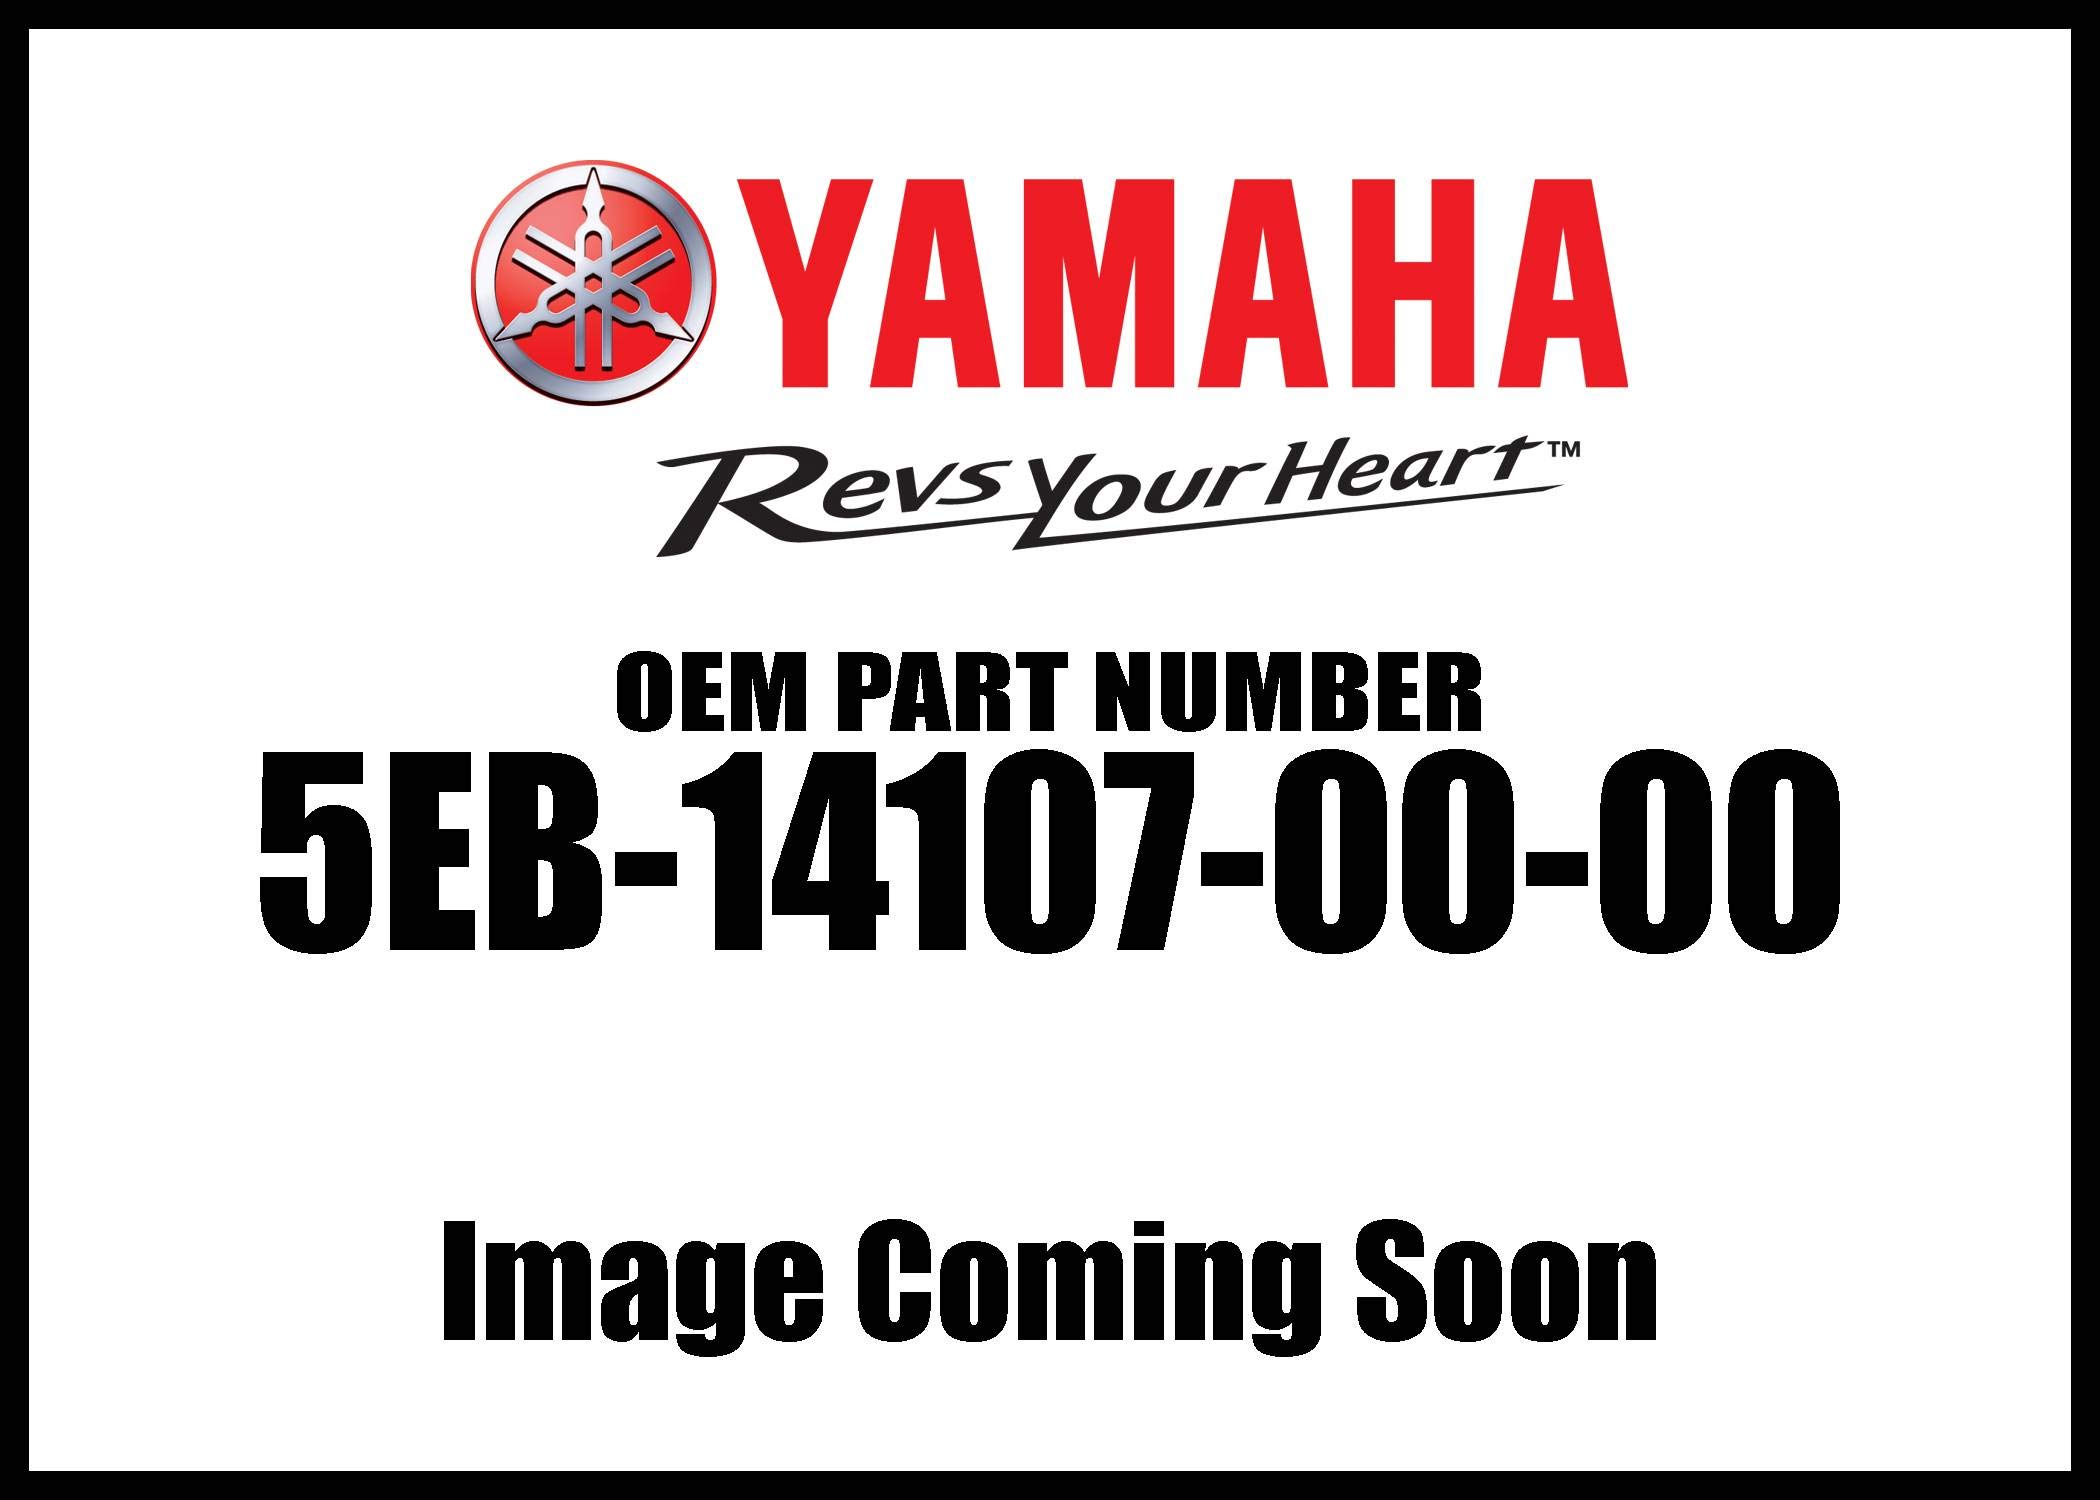 Yamaha 5EB-14107-00-00 Needle Valve Set; ATV Motorcycle Snow Mobile Scooter Parts by Yamaha